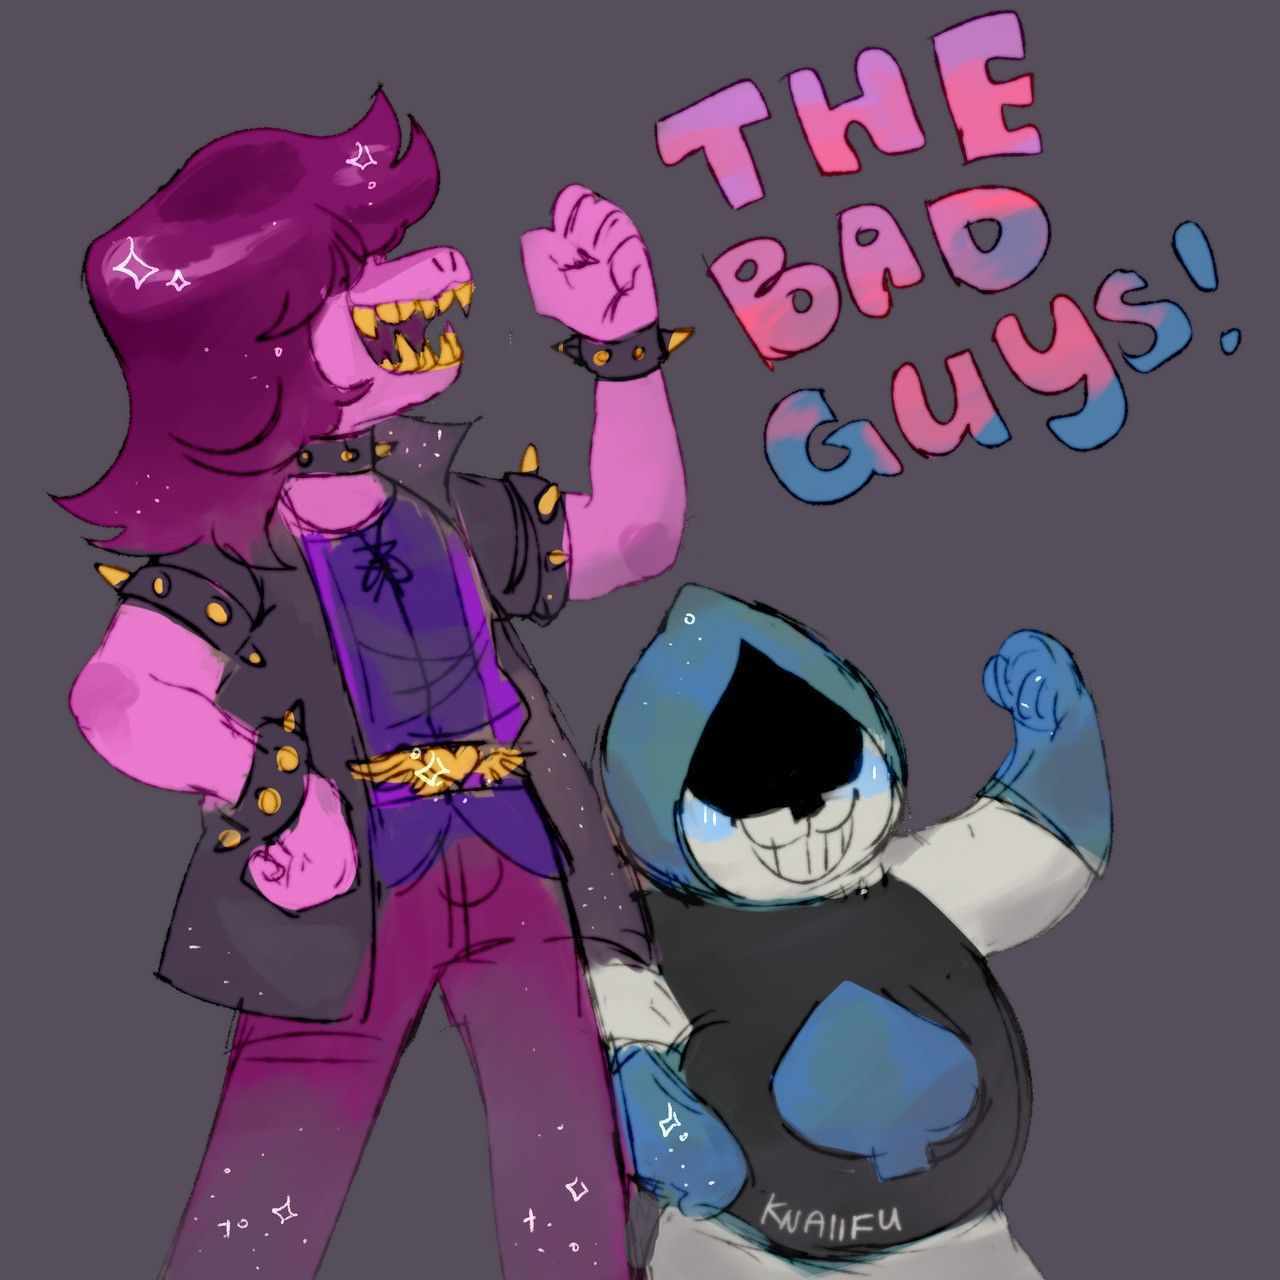 Pin by Fandoms And Random Stuff on Undertale and deltarune